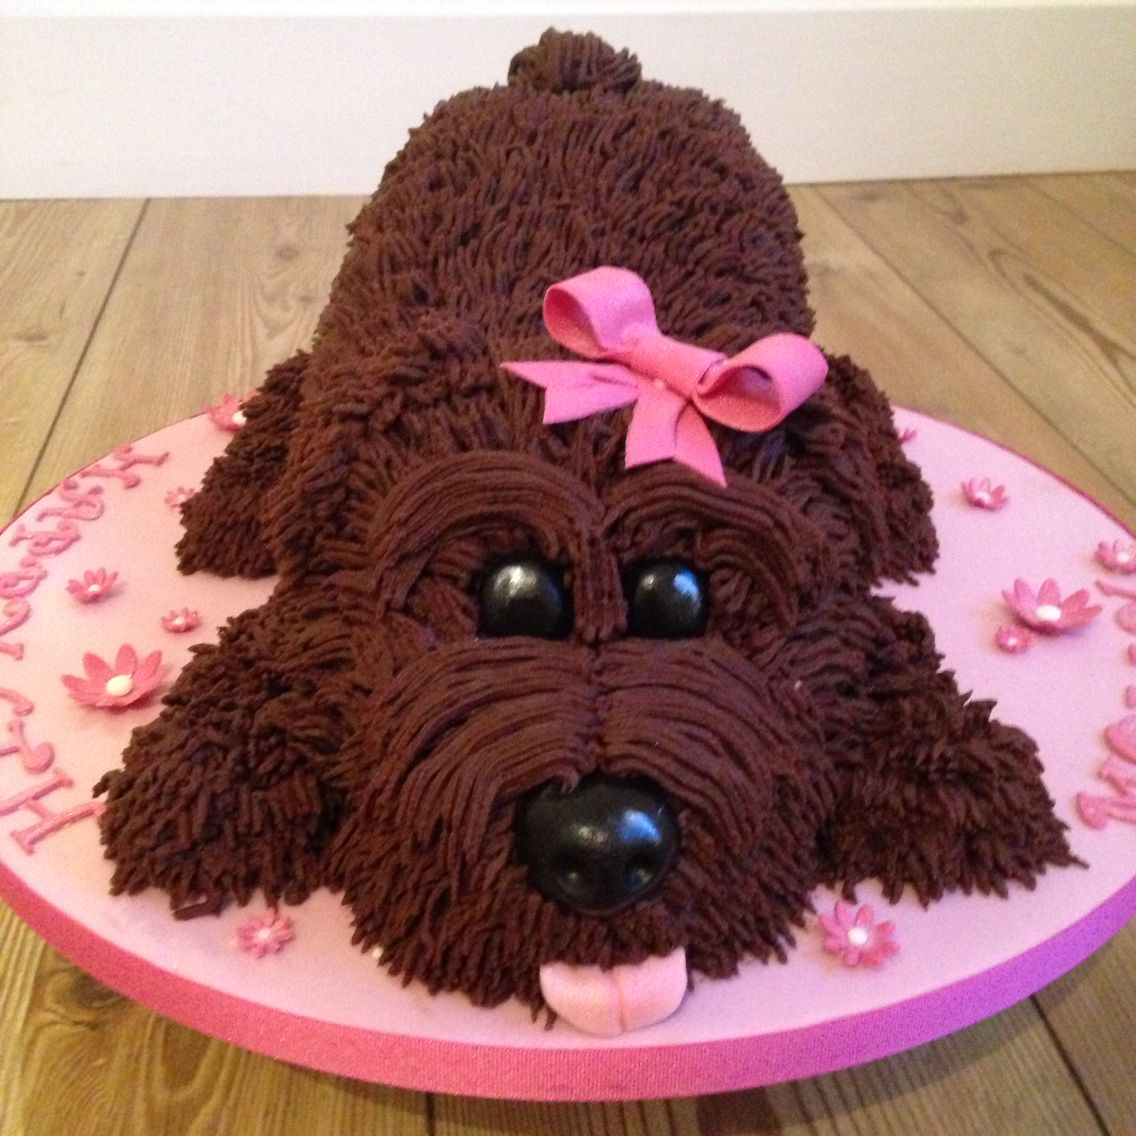 Dog Shaped Ice Cream Cake